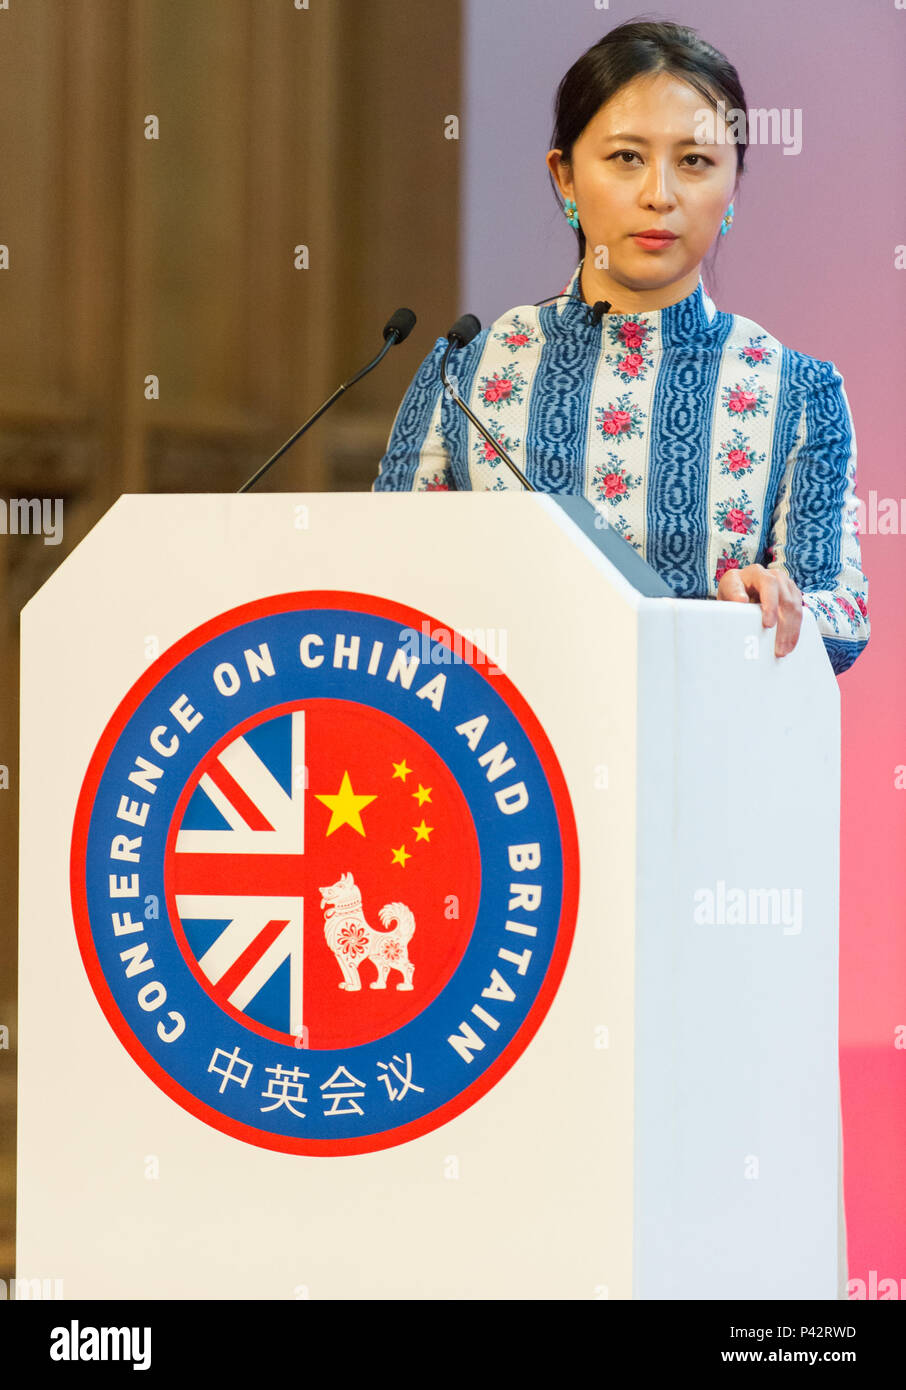 Dr Keyu Jin, Associate Professor of Economics at the London School of Economics, during her intervention at the Margaret Thatcher Conference on China and Britain at Guildhall. - Stock Image